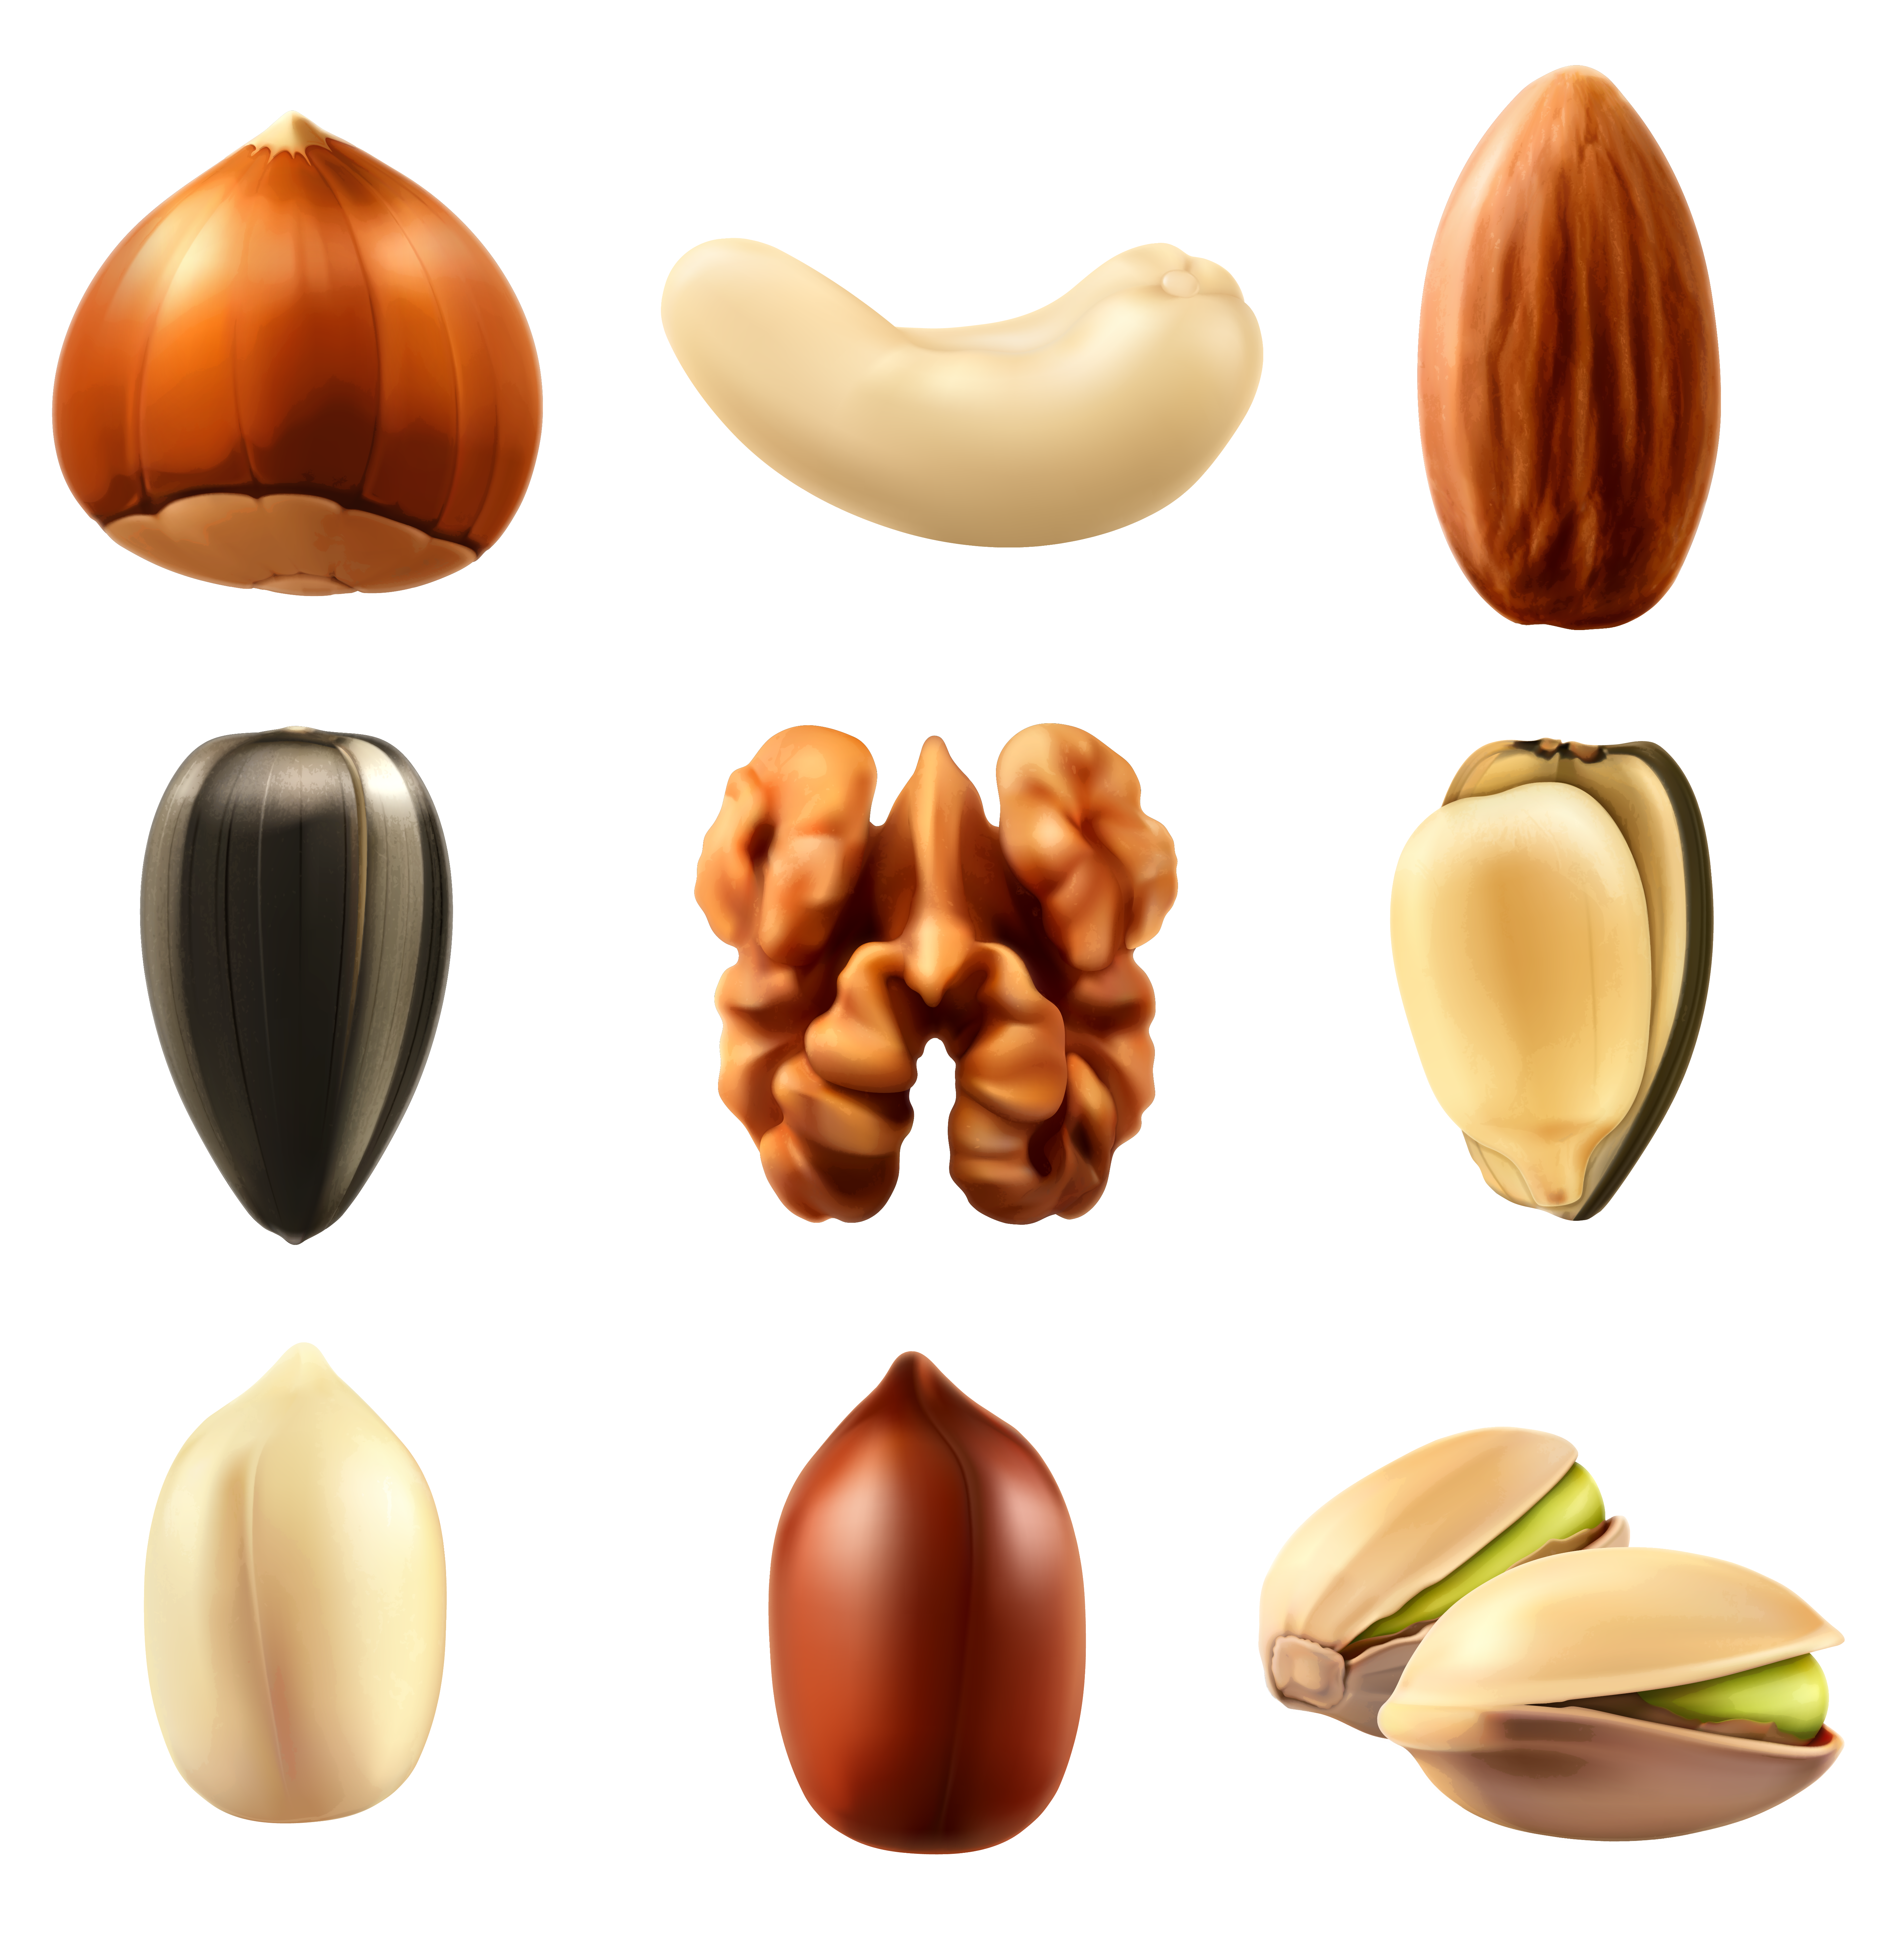 Peanuts clipart nut seed. Nuts collection png clipar